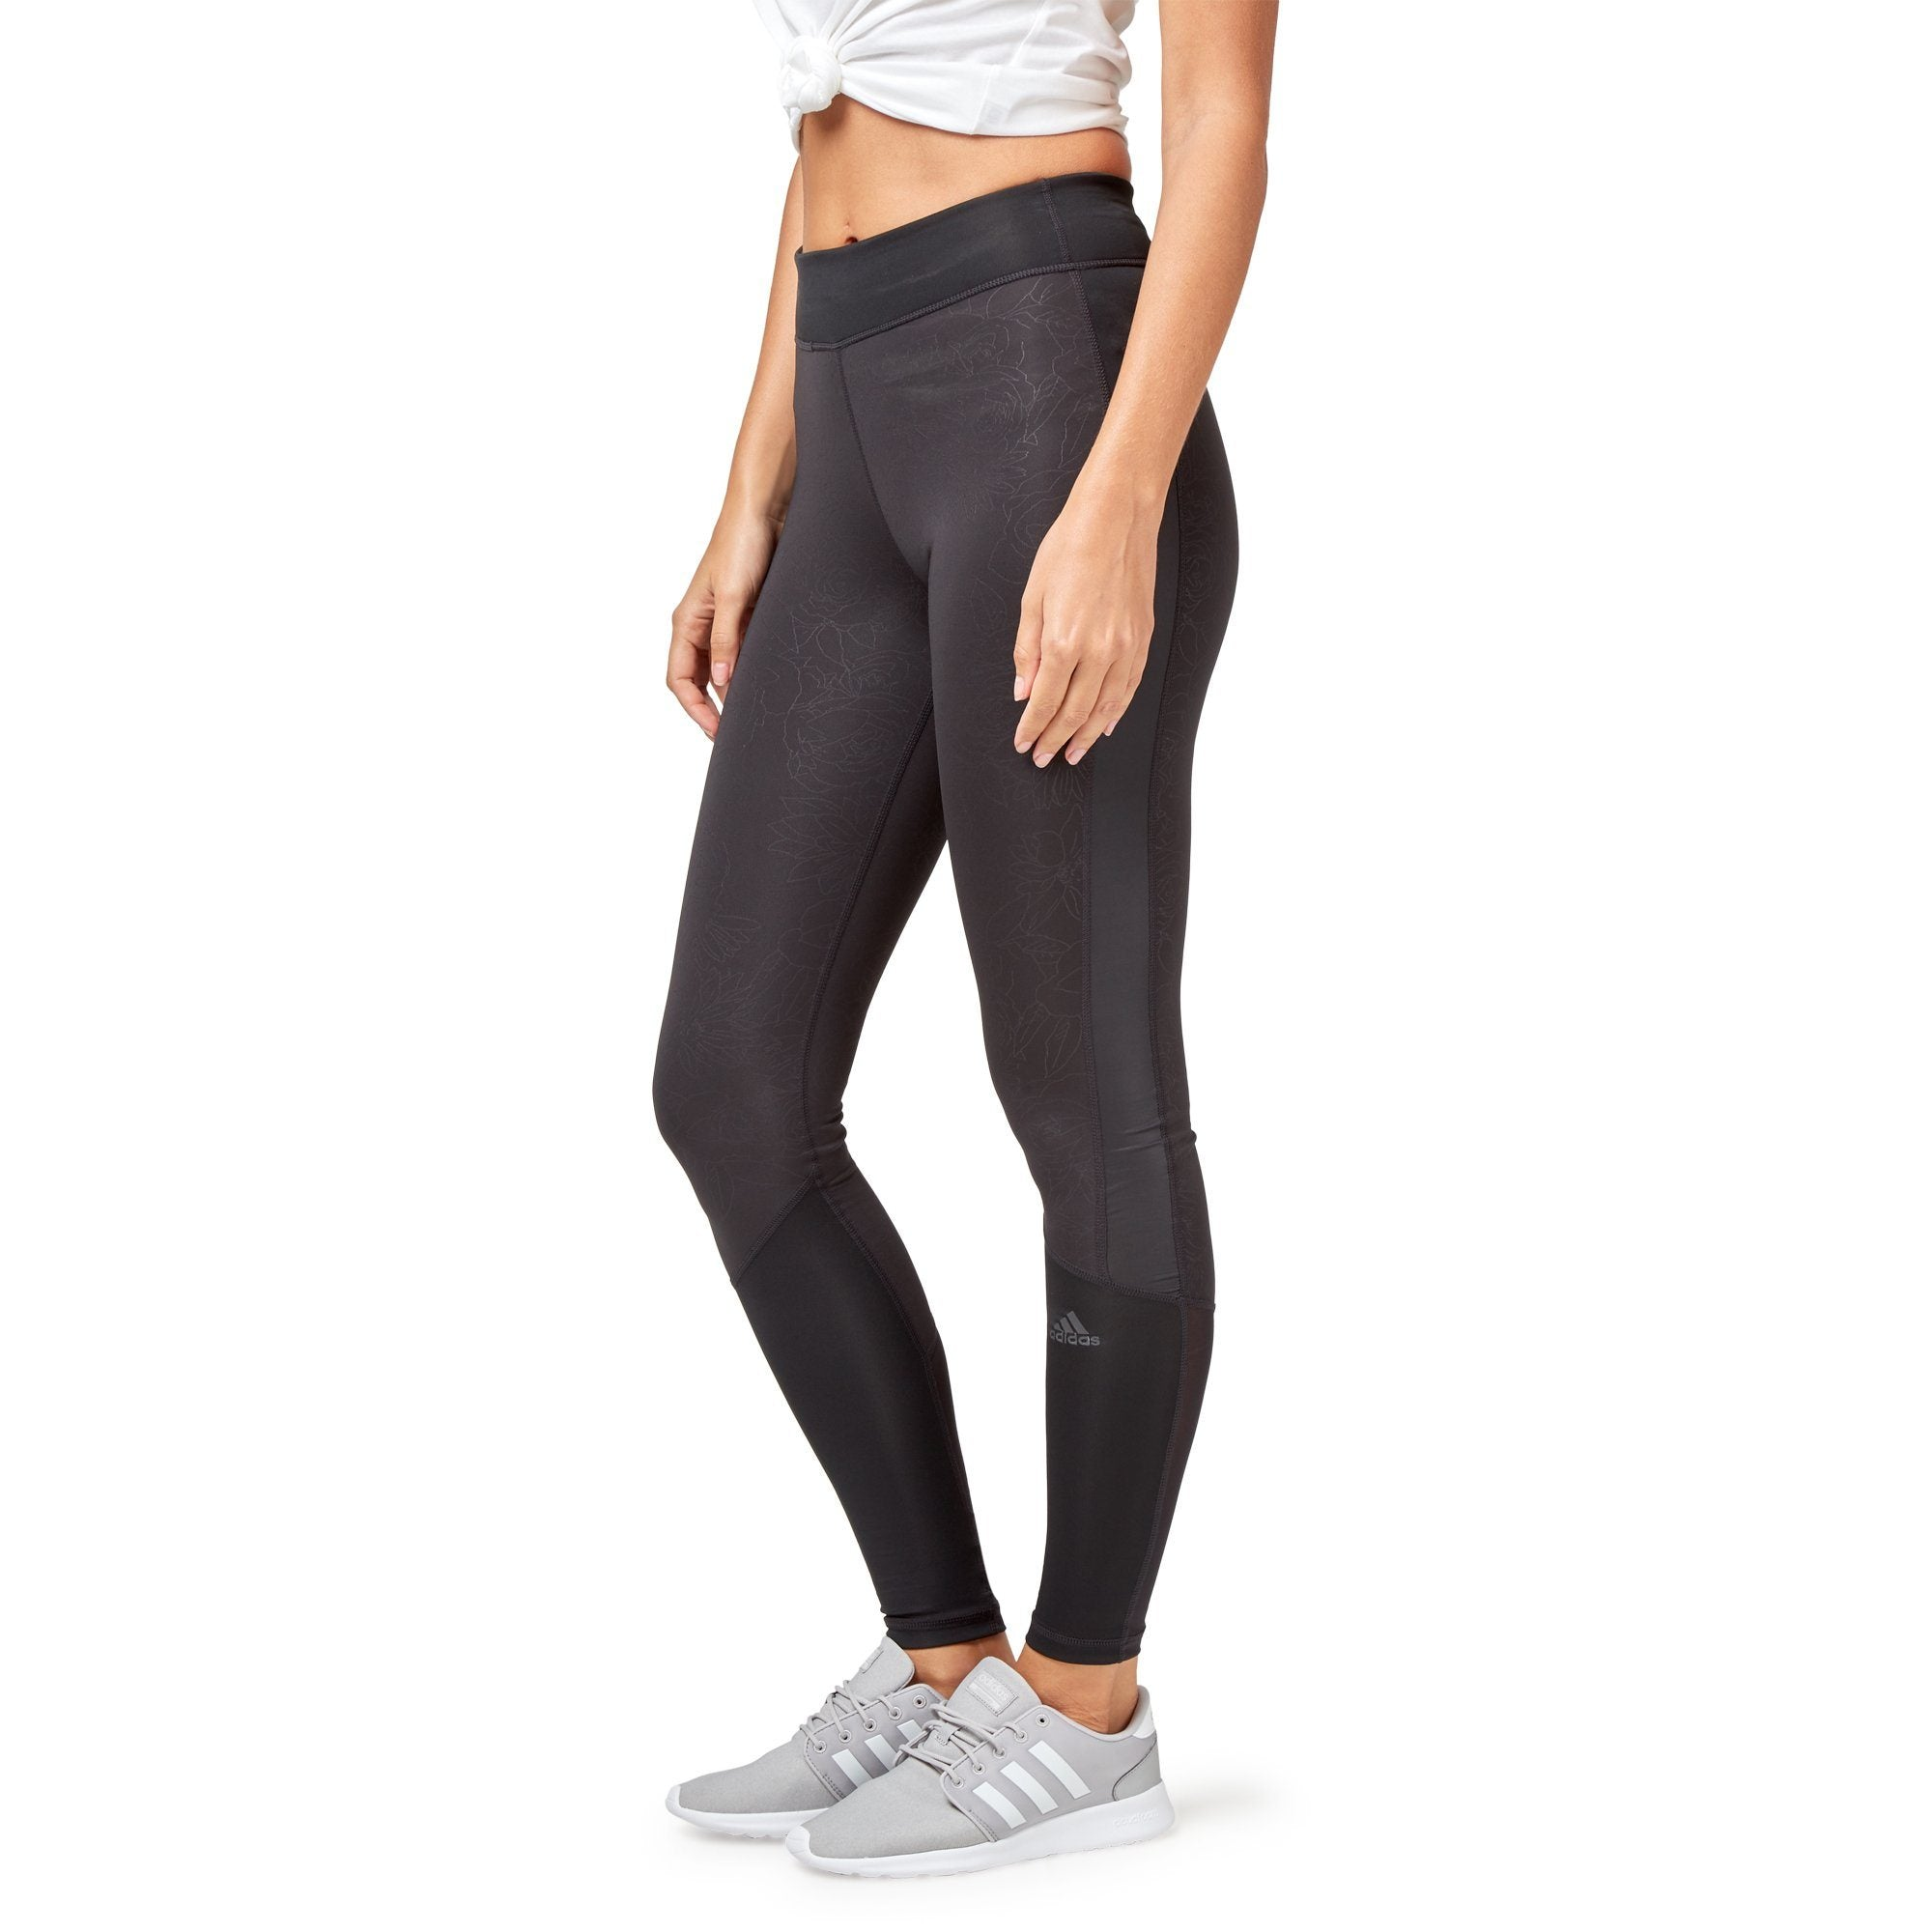 Adidas Women's Designed-2-Move Tights - Black/print SportsPower Geelong  (2012421324859)